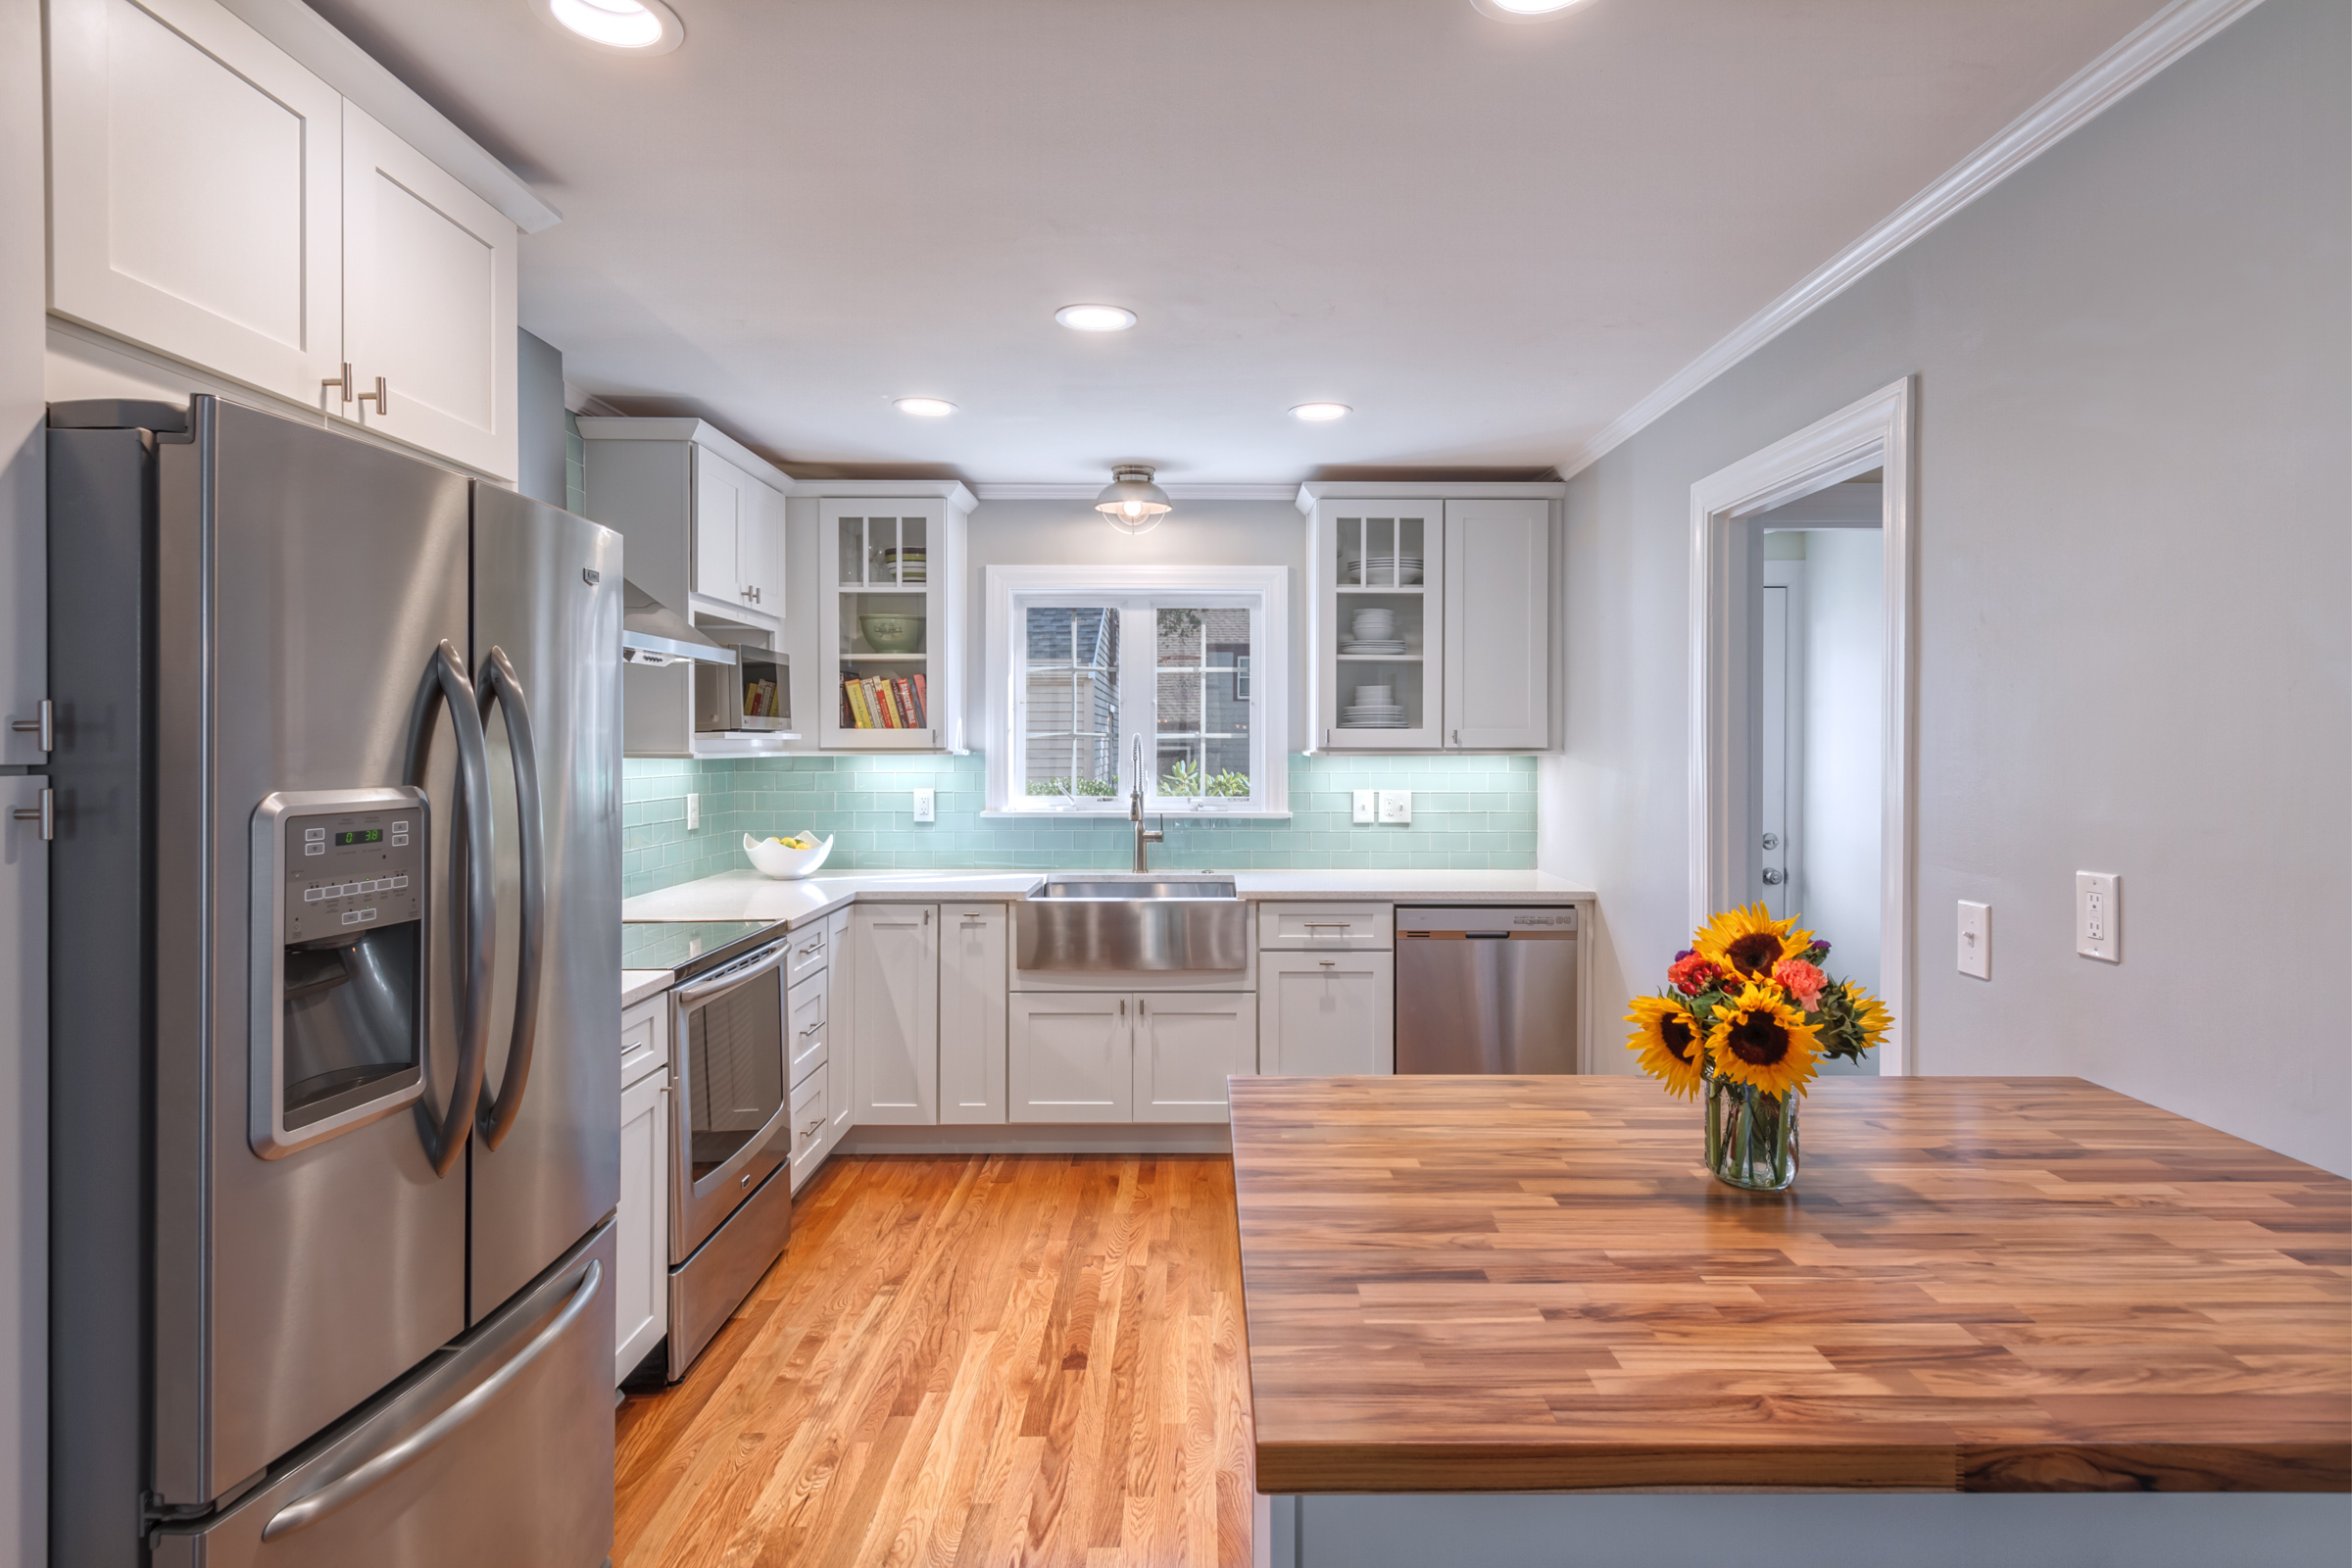 2-Kitchen from dining room - Wide.jpg